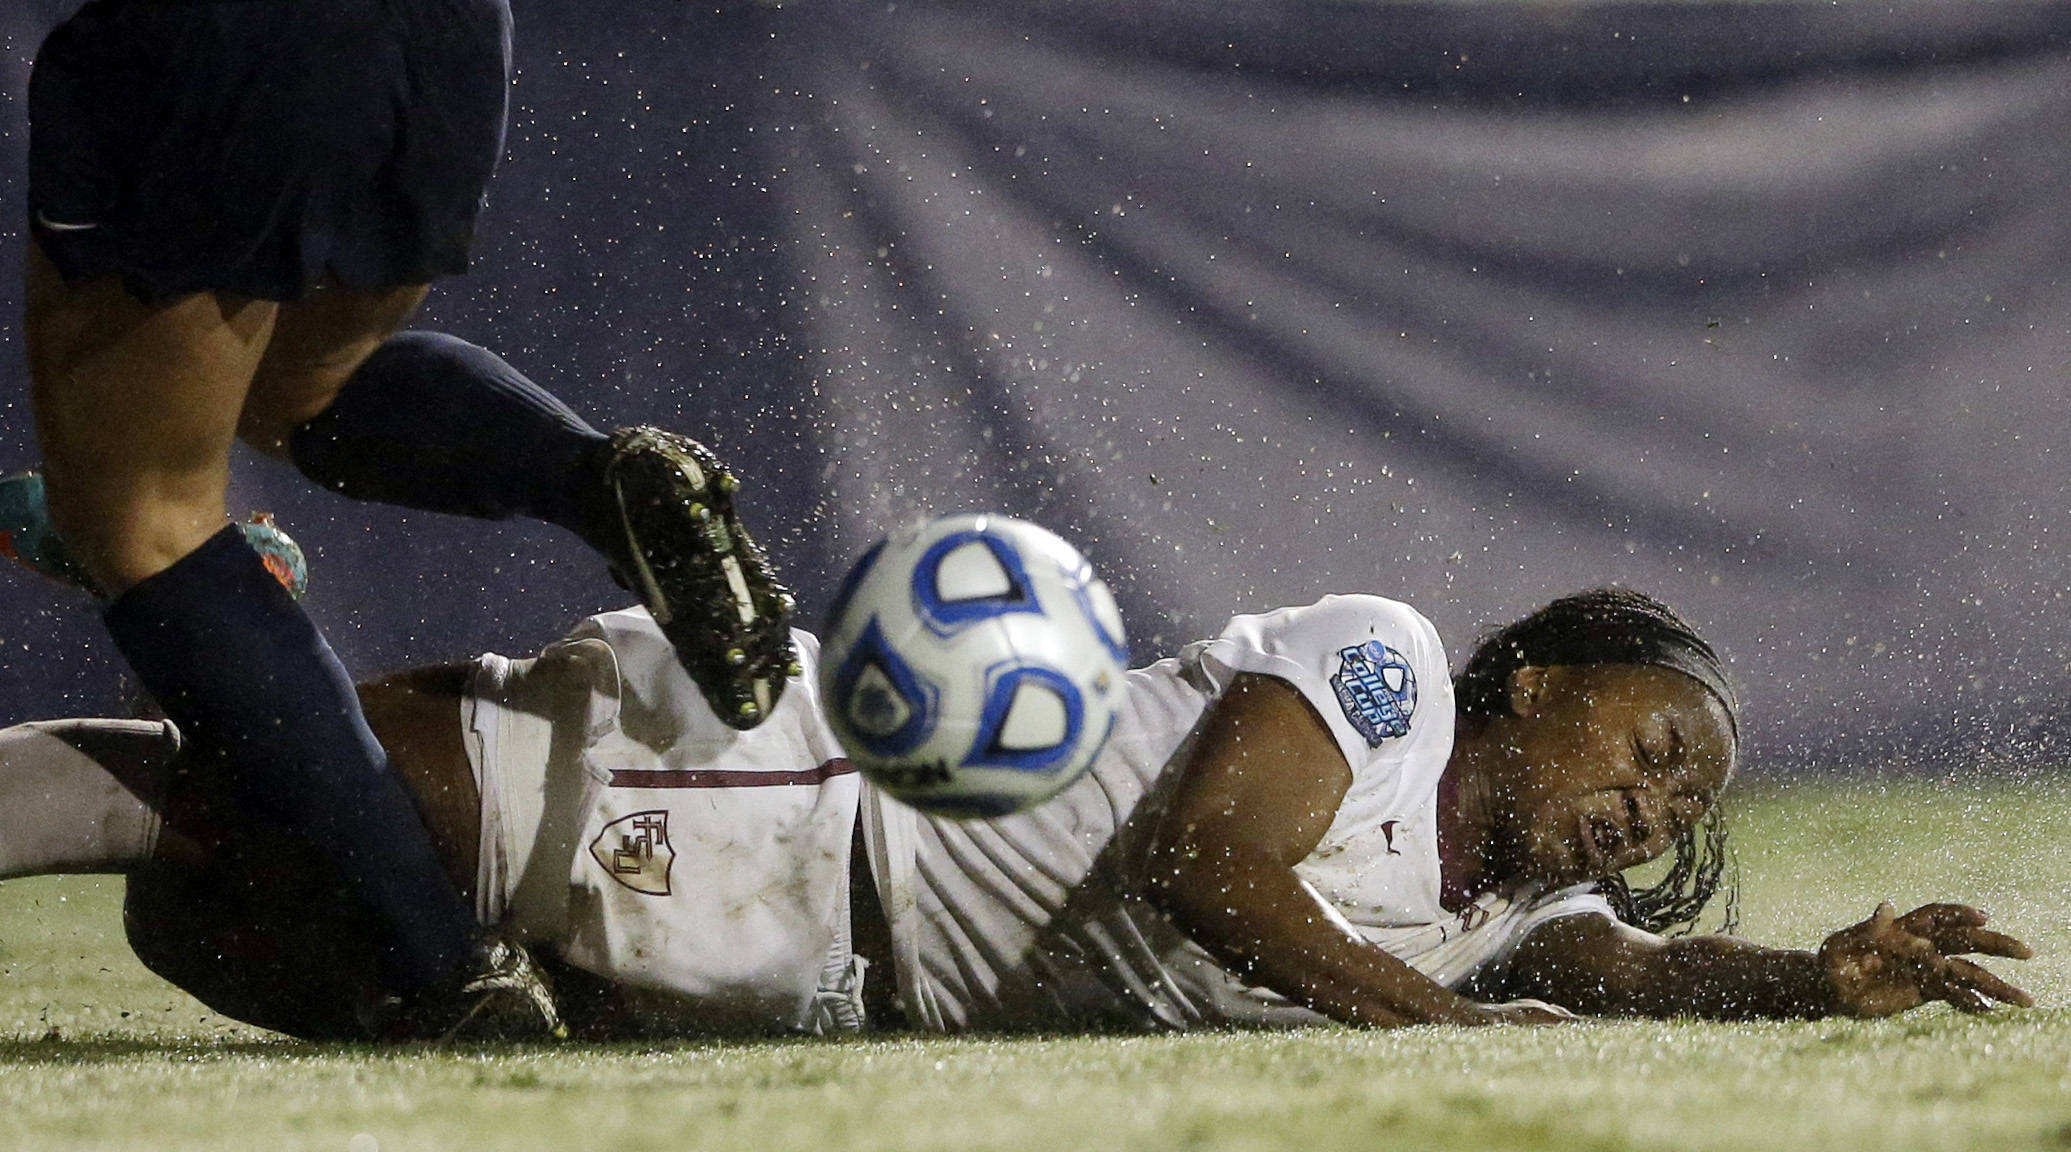 Jamia Fields slips on the wet field during the second half. (AP Photo/Gregory Bull)